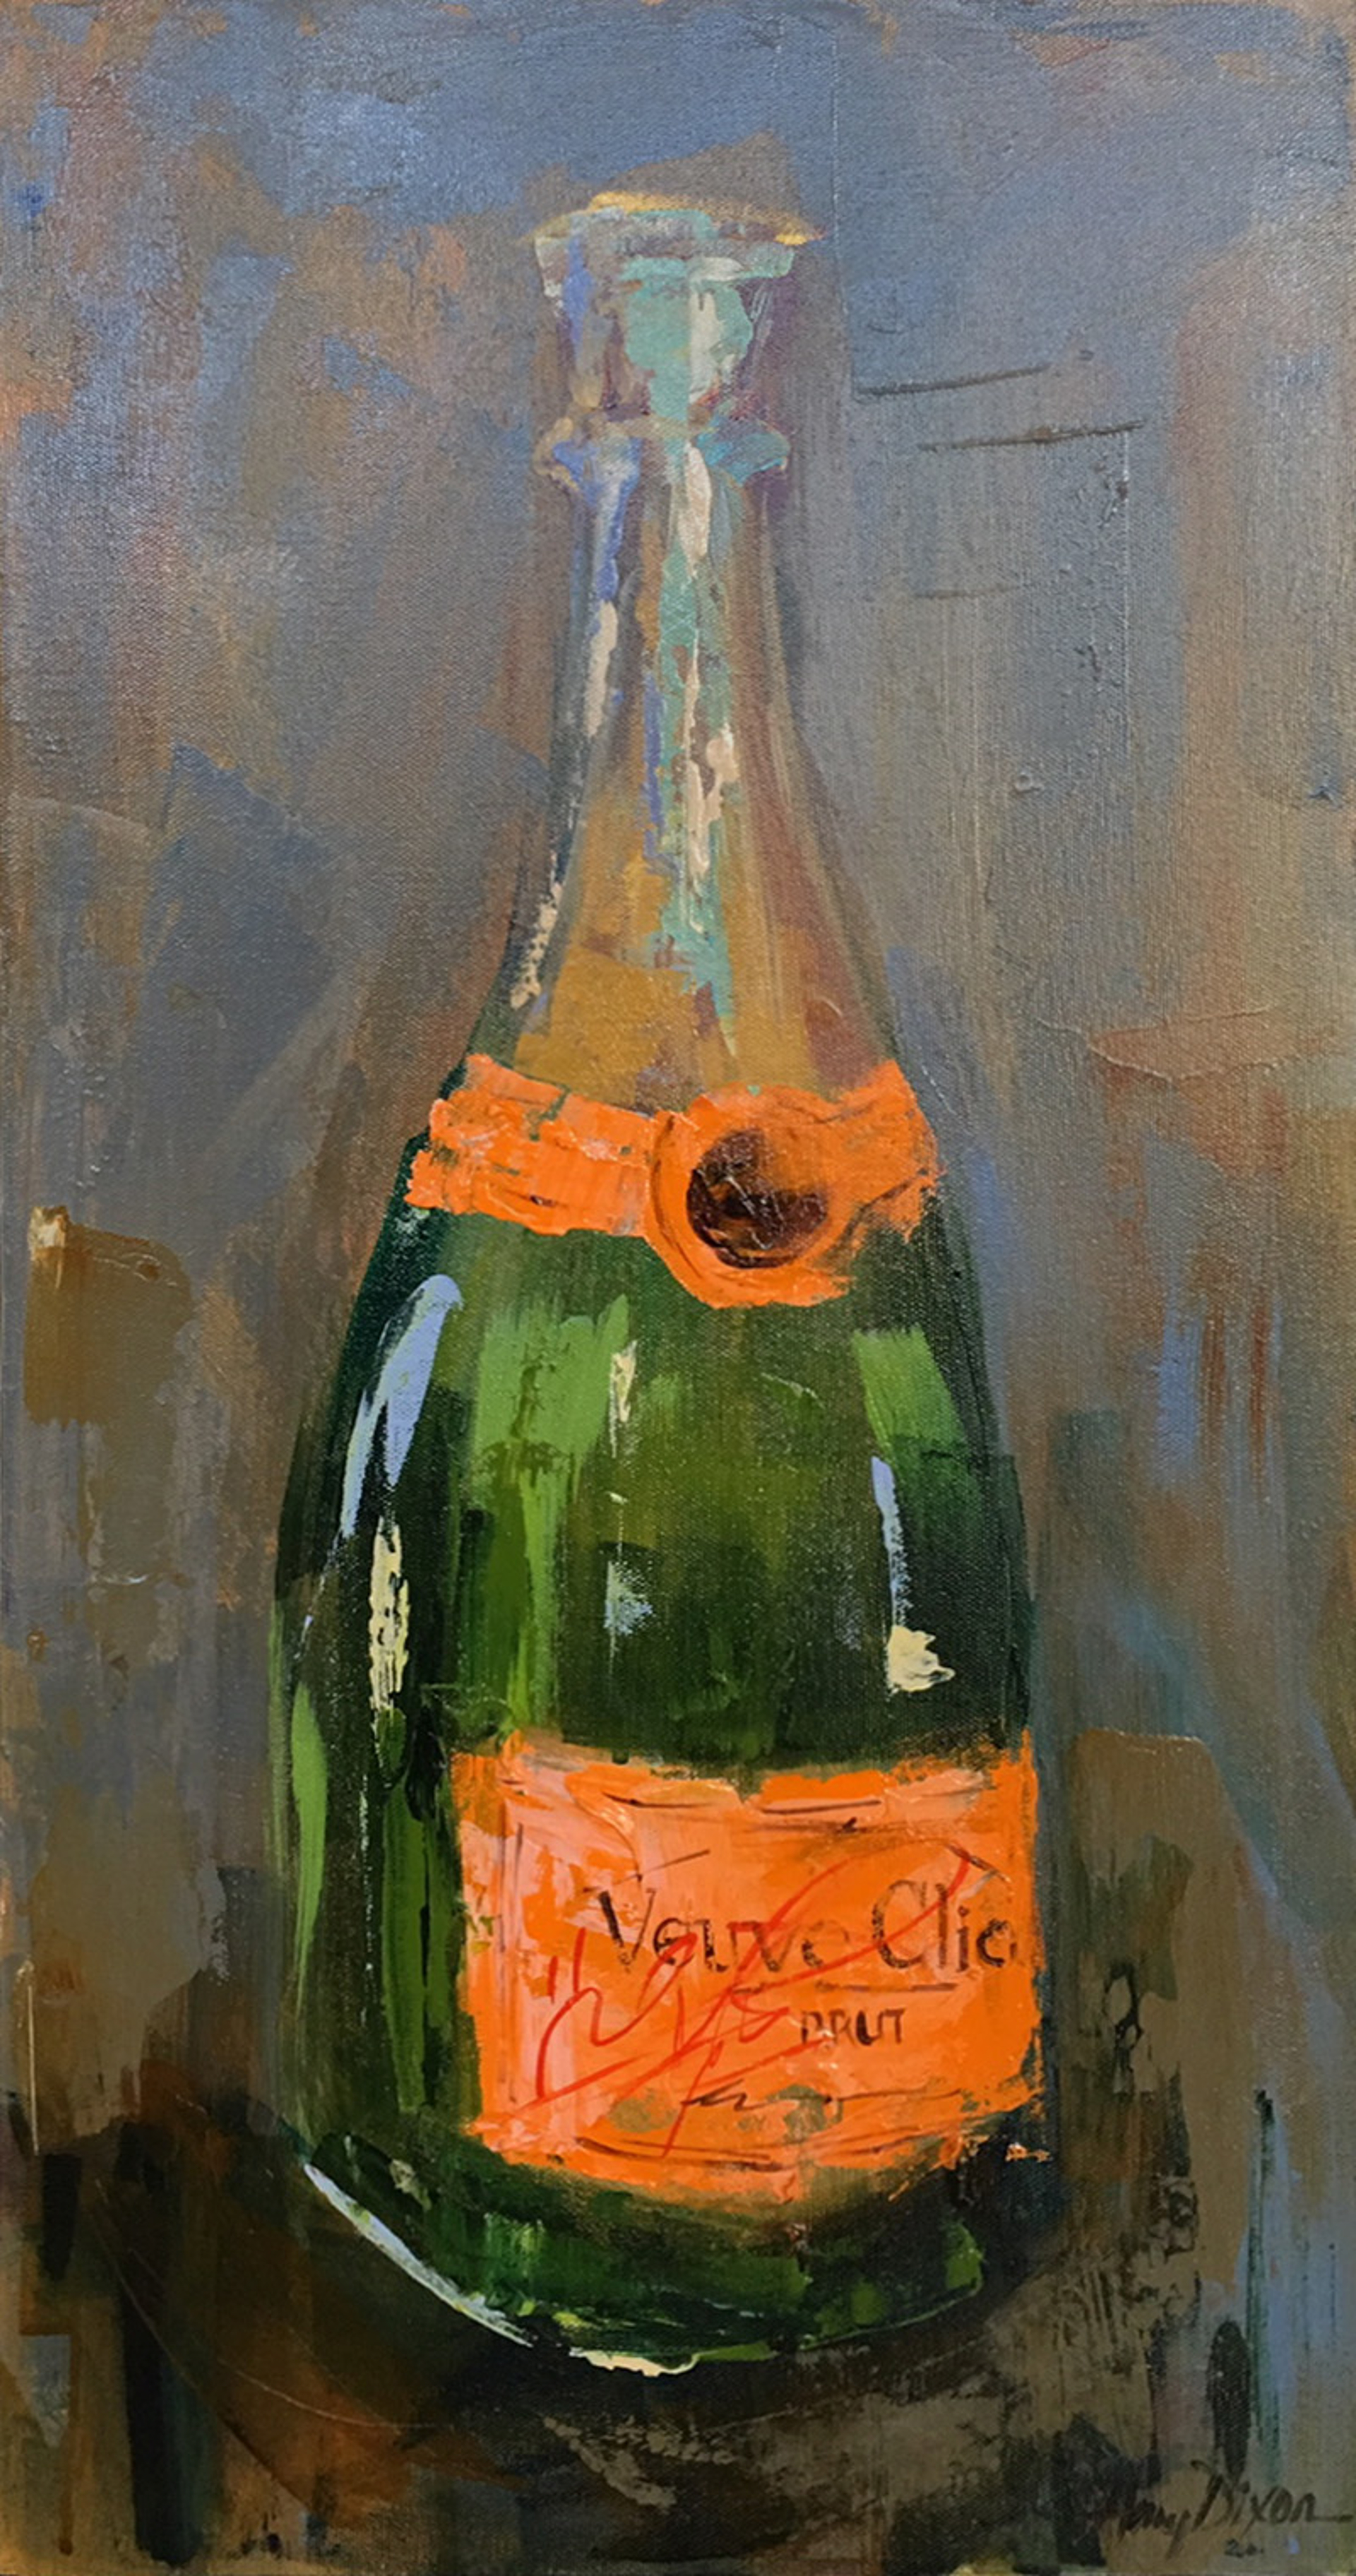 Cheers! by Amy Dixon